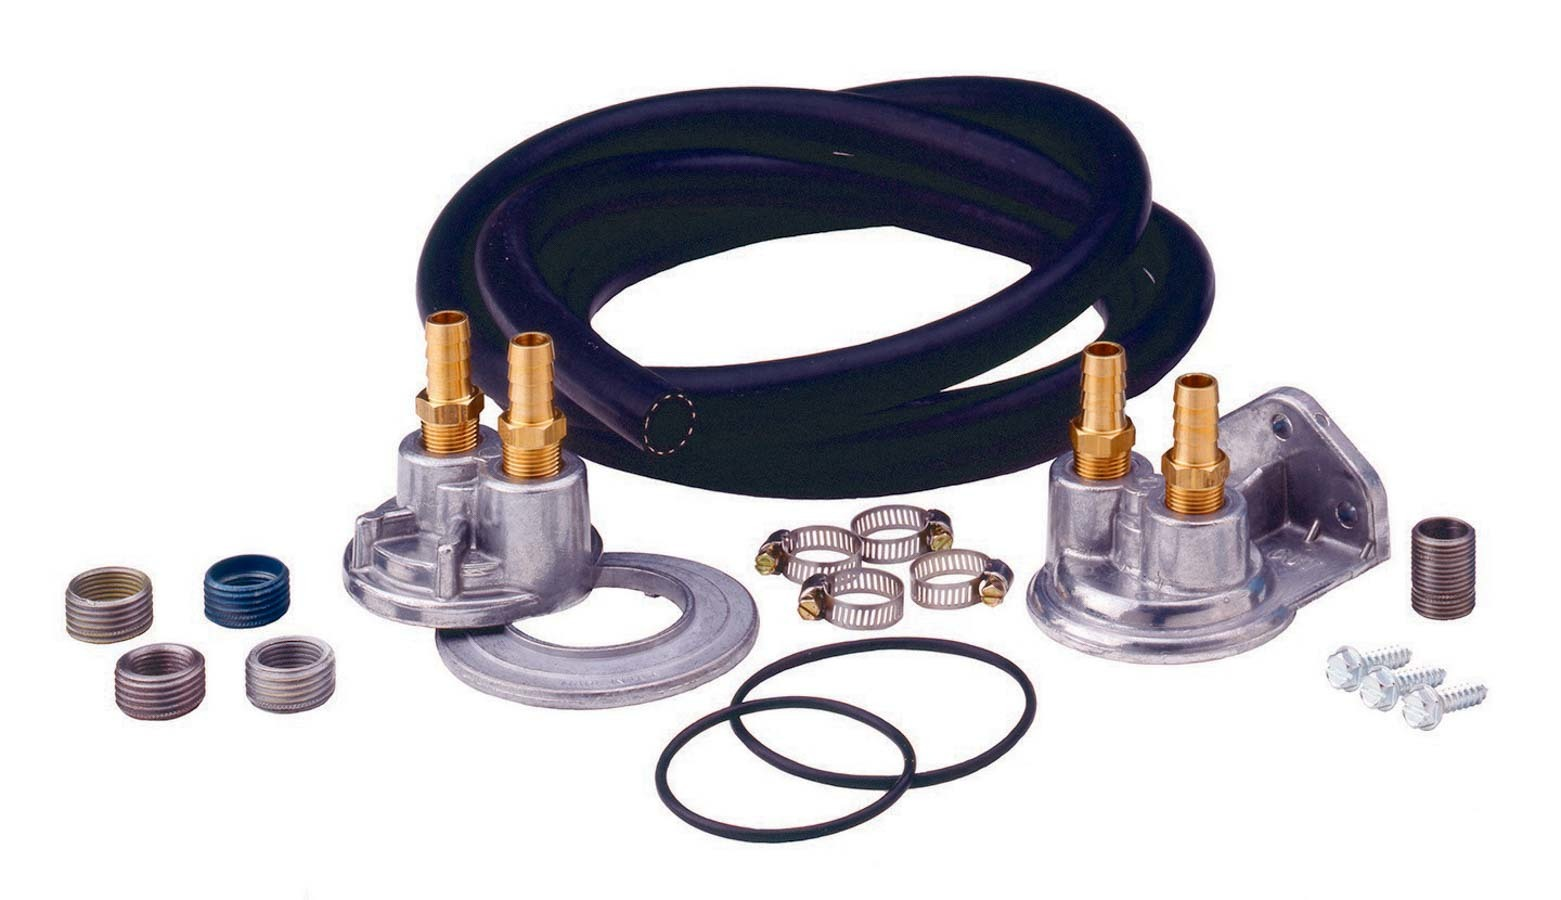 Perma Cool 10695 Remote Oil Filter, Single Filter, Various Thread Adapters, 8 ft Hose, 3/4-16 in Thread Housing, Fittings / Hardware, Universal, Kit